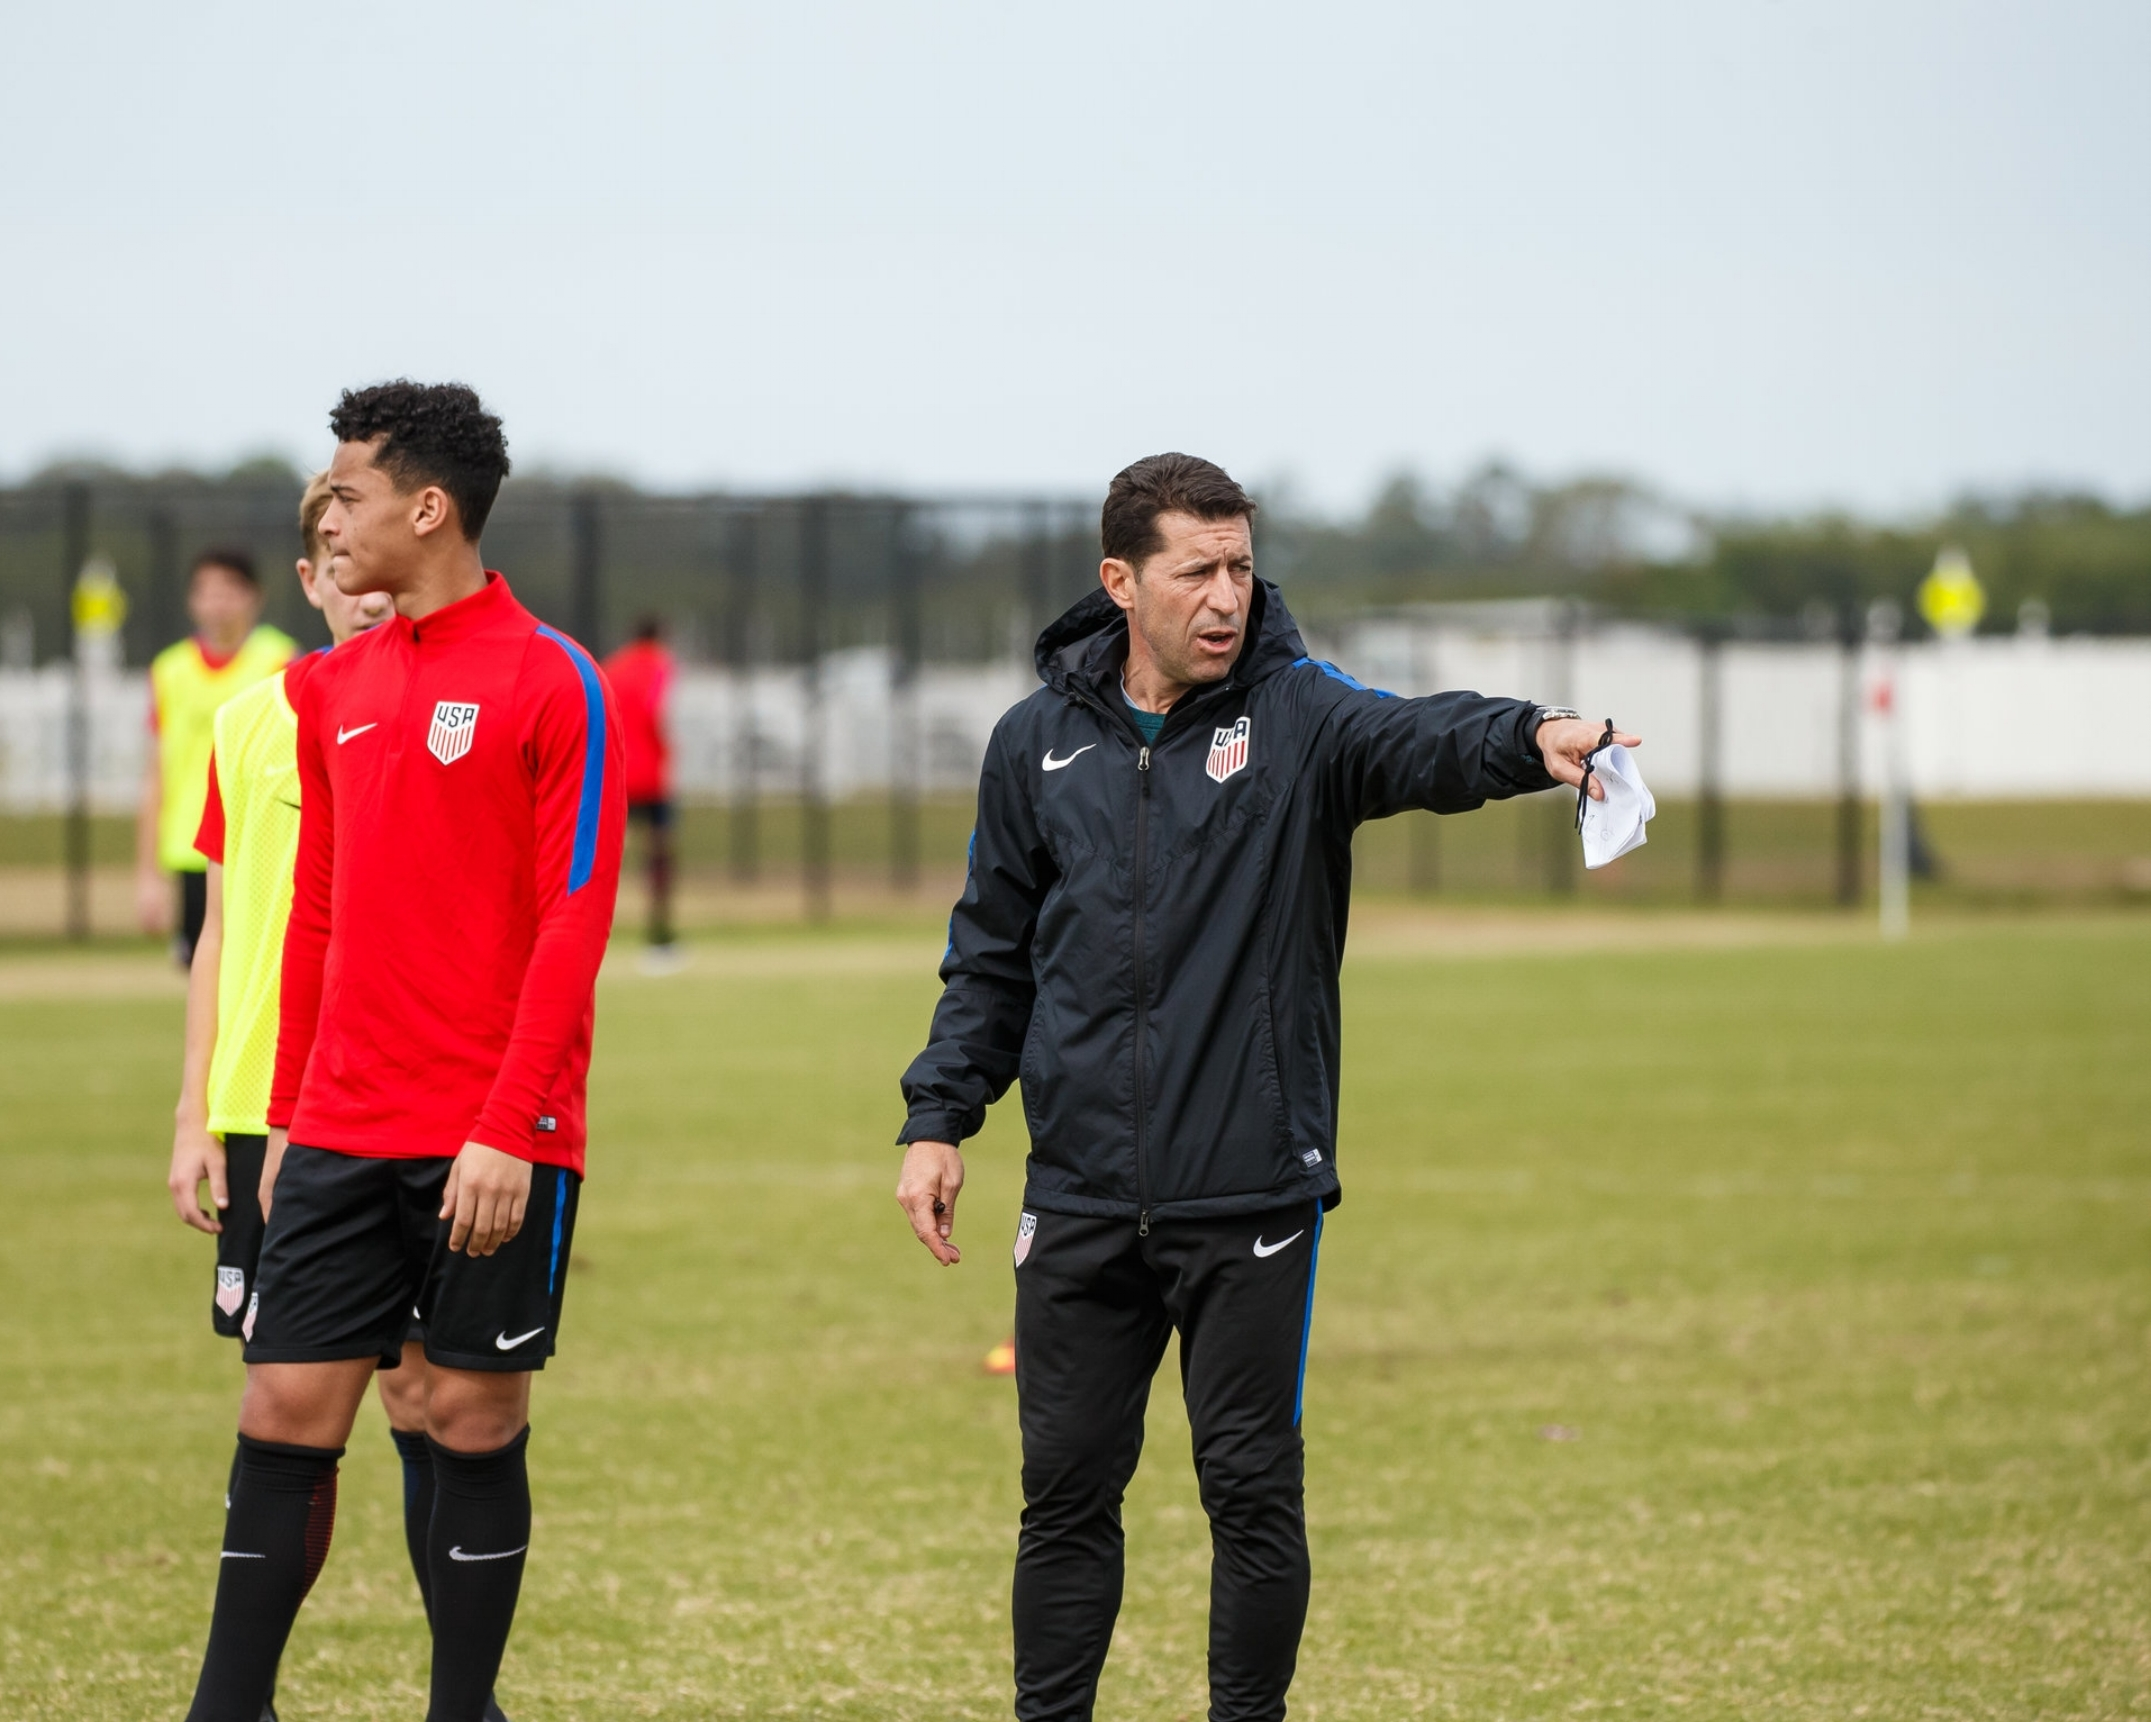 Coaches by the Numbers - 172,324: Registered users in the Digital Coaching Center (DCC)128,000: Licensed coaches in the United States41,500: New licensed coaches in 2017300,000: Goal of new licensed coaches by 2022